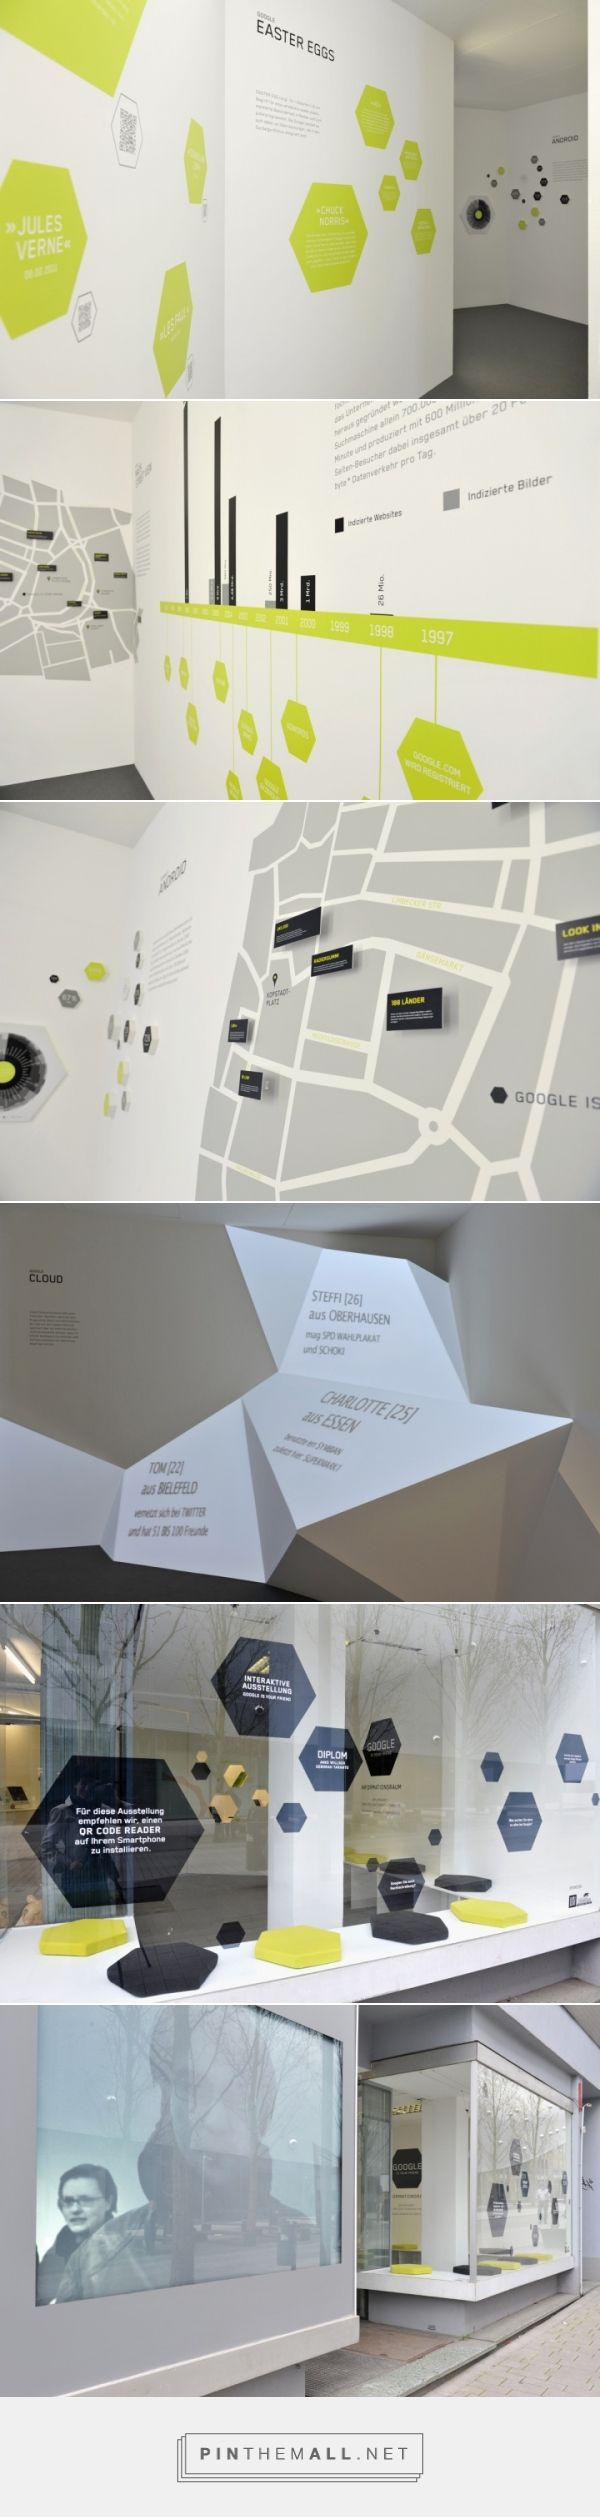 Google is your friend interactive exhibition by Anke Willsch & Deborah Taranto, Essen – Germany » Retail Design Blog - created via http://pinthemall.net